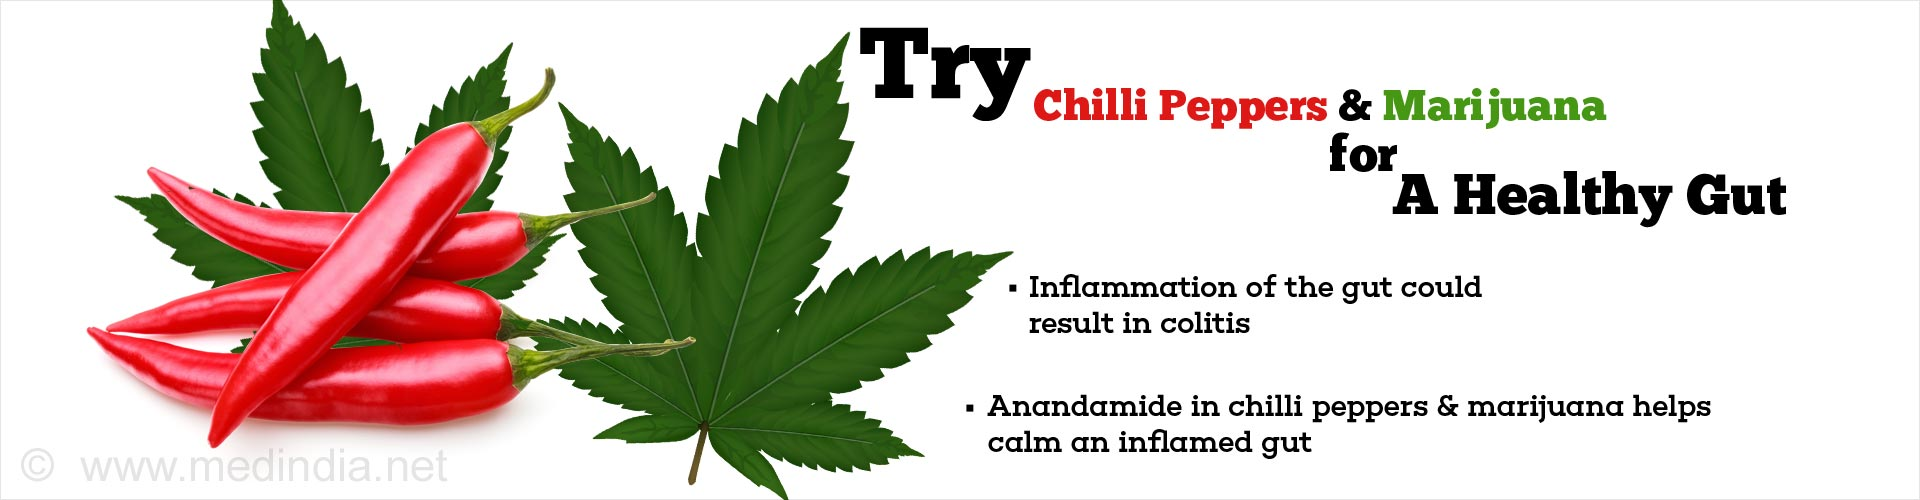 Try Chilli Peppers & Marijuana for A Healthy Gut